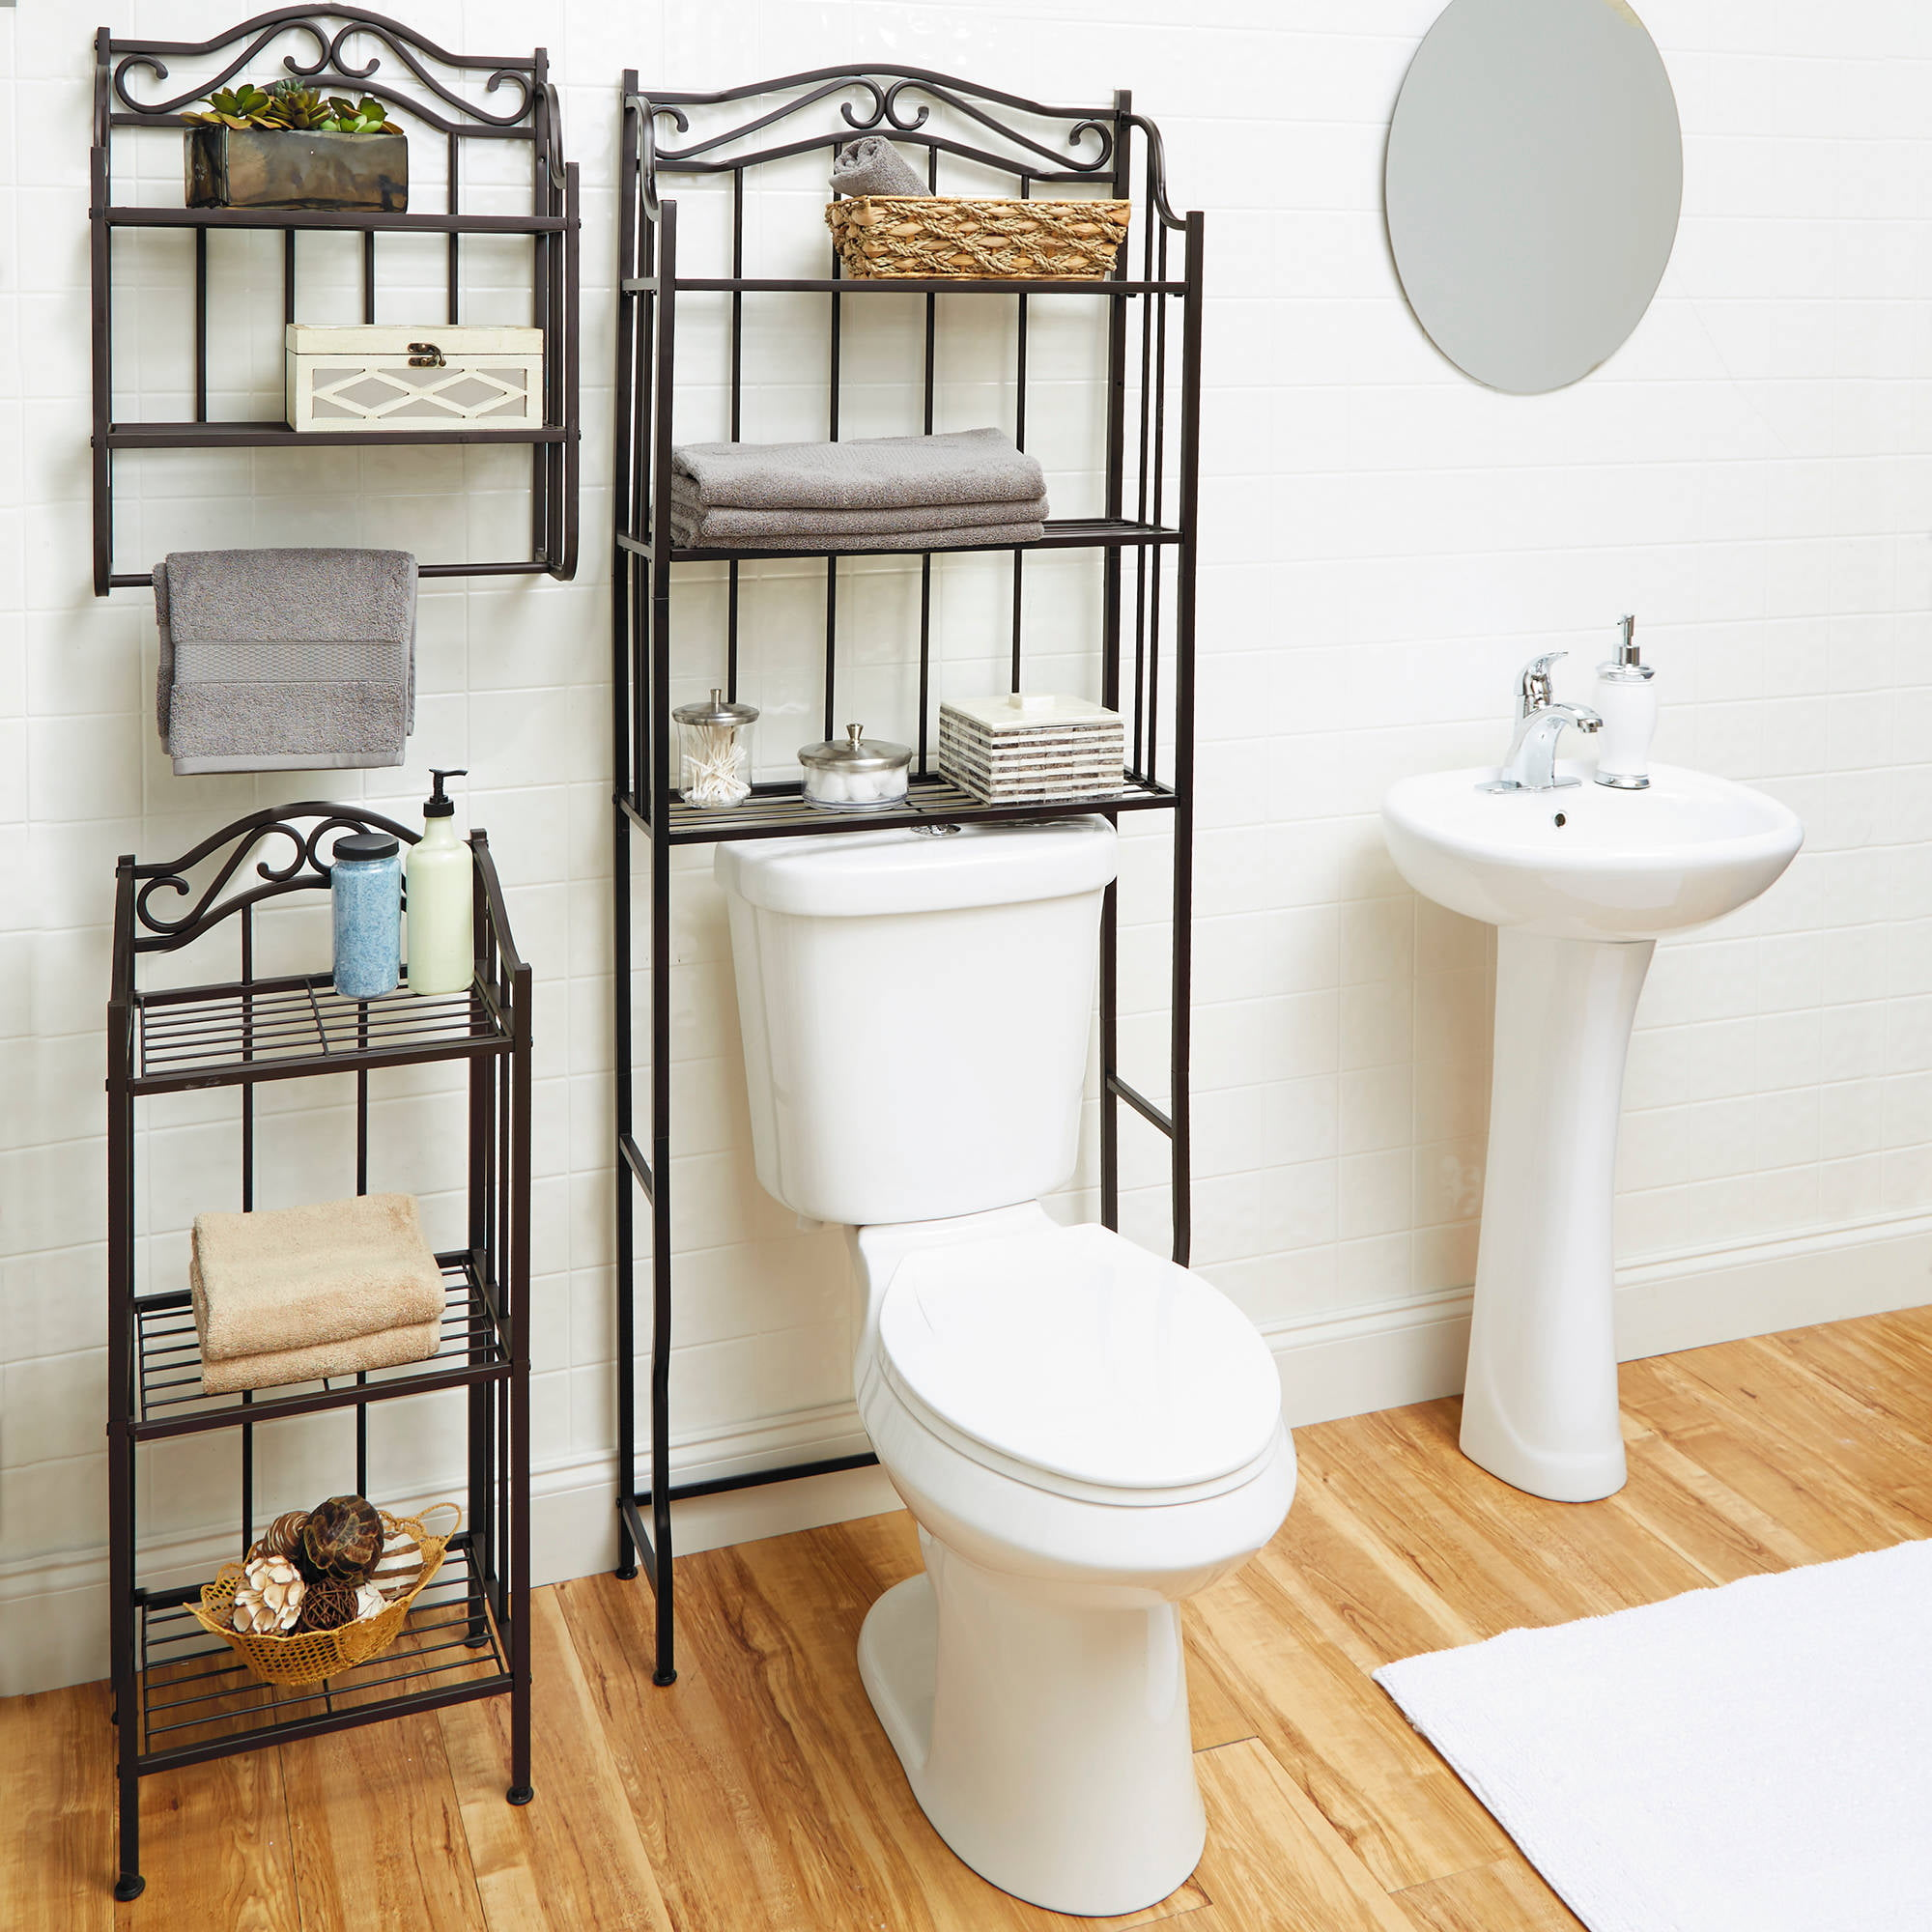 3 Shelf Bathroom Storage Rack E Saver Over Toilet Oil Rubbed Bronze Metal